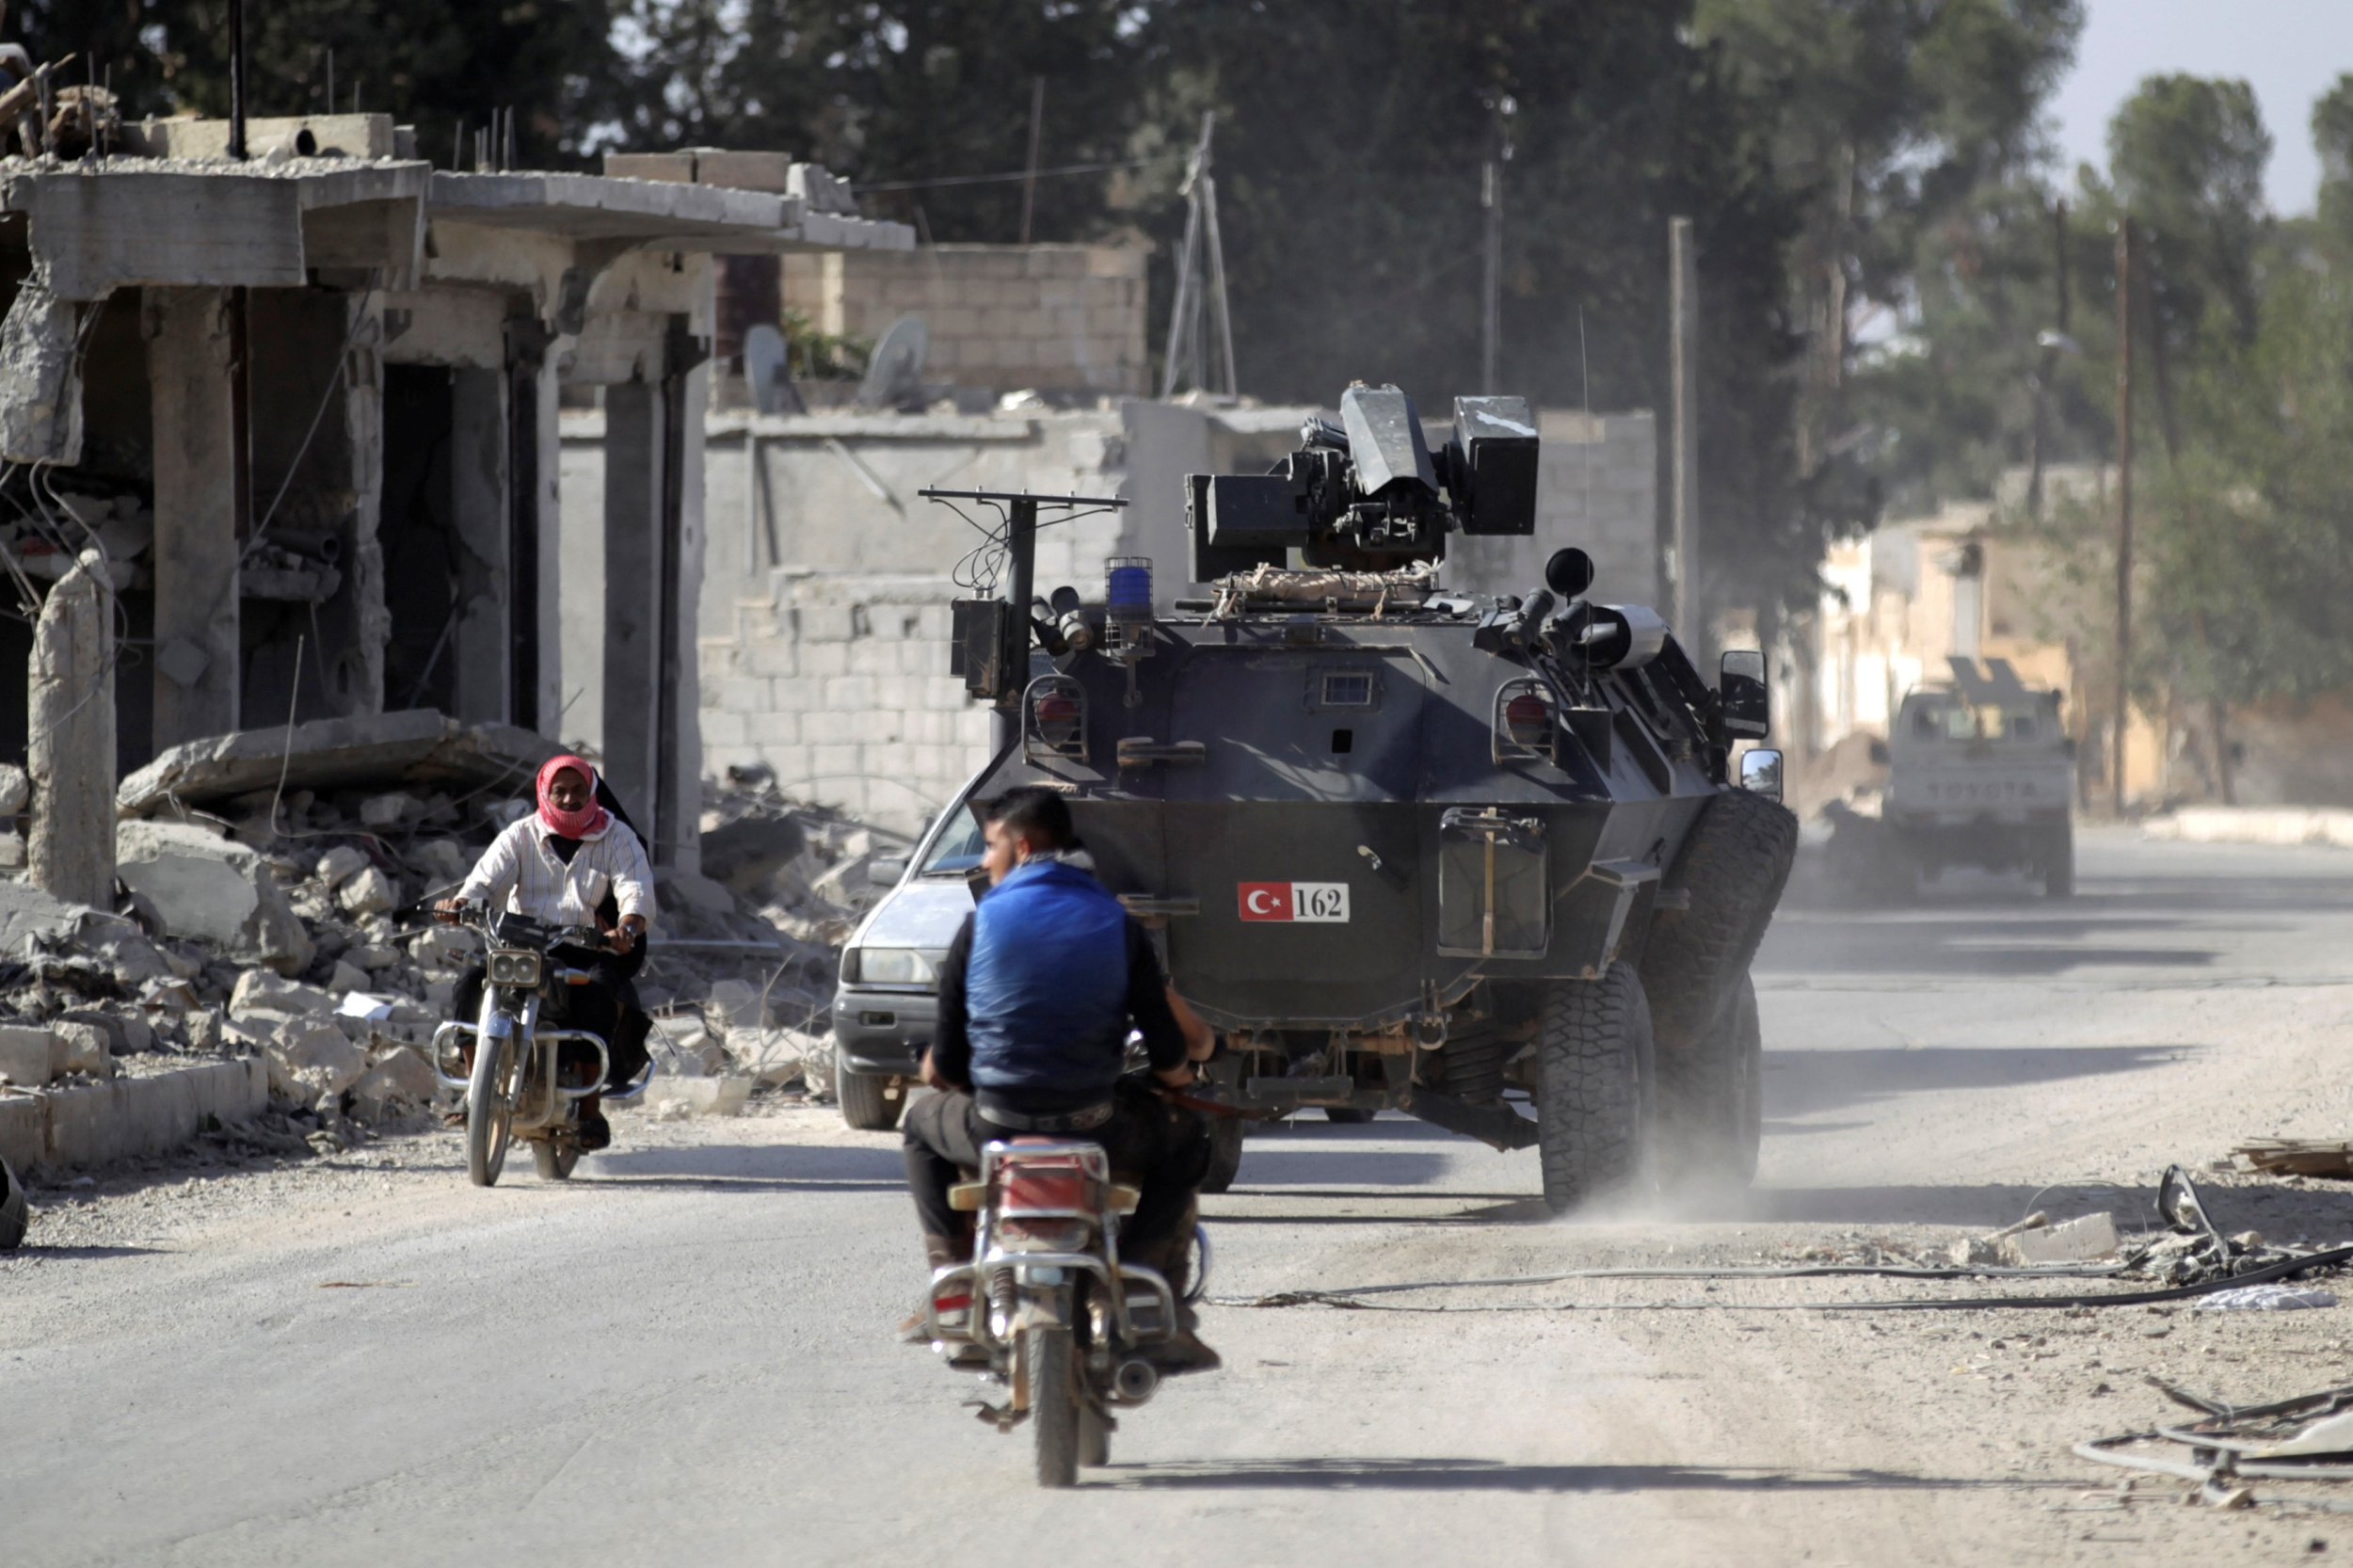 Russian Airstrikes in al-Bab Join Turkish Military's Fight Against ISIS